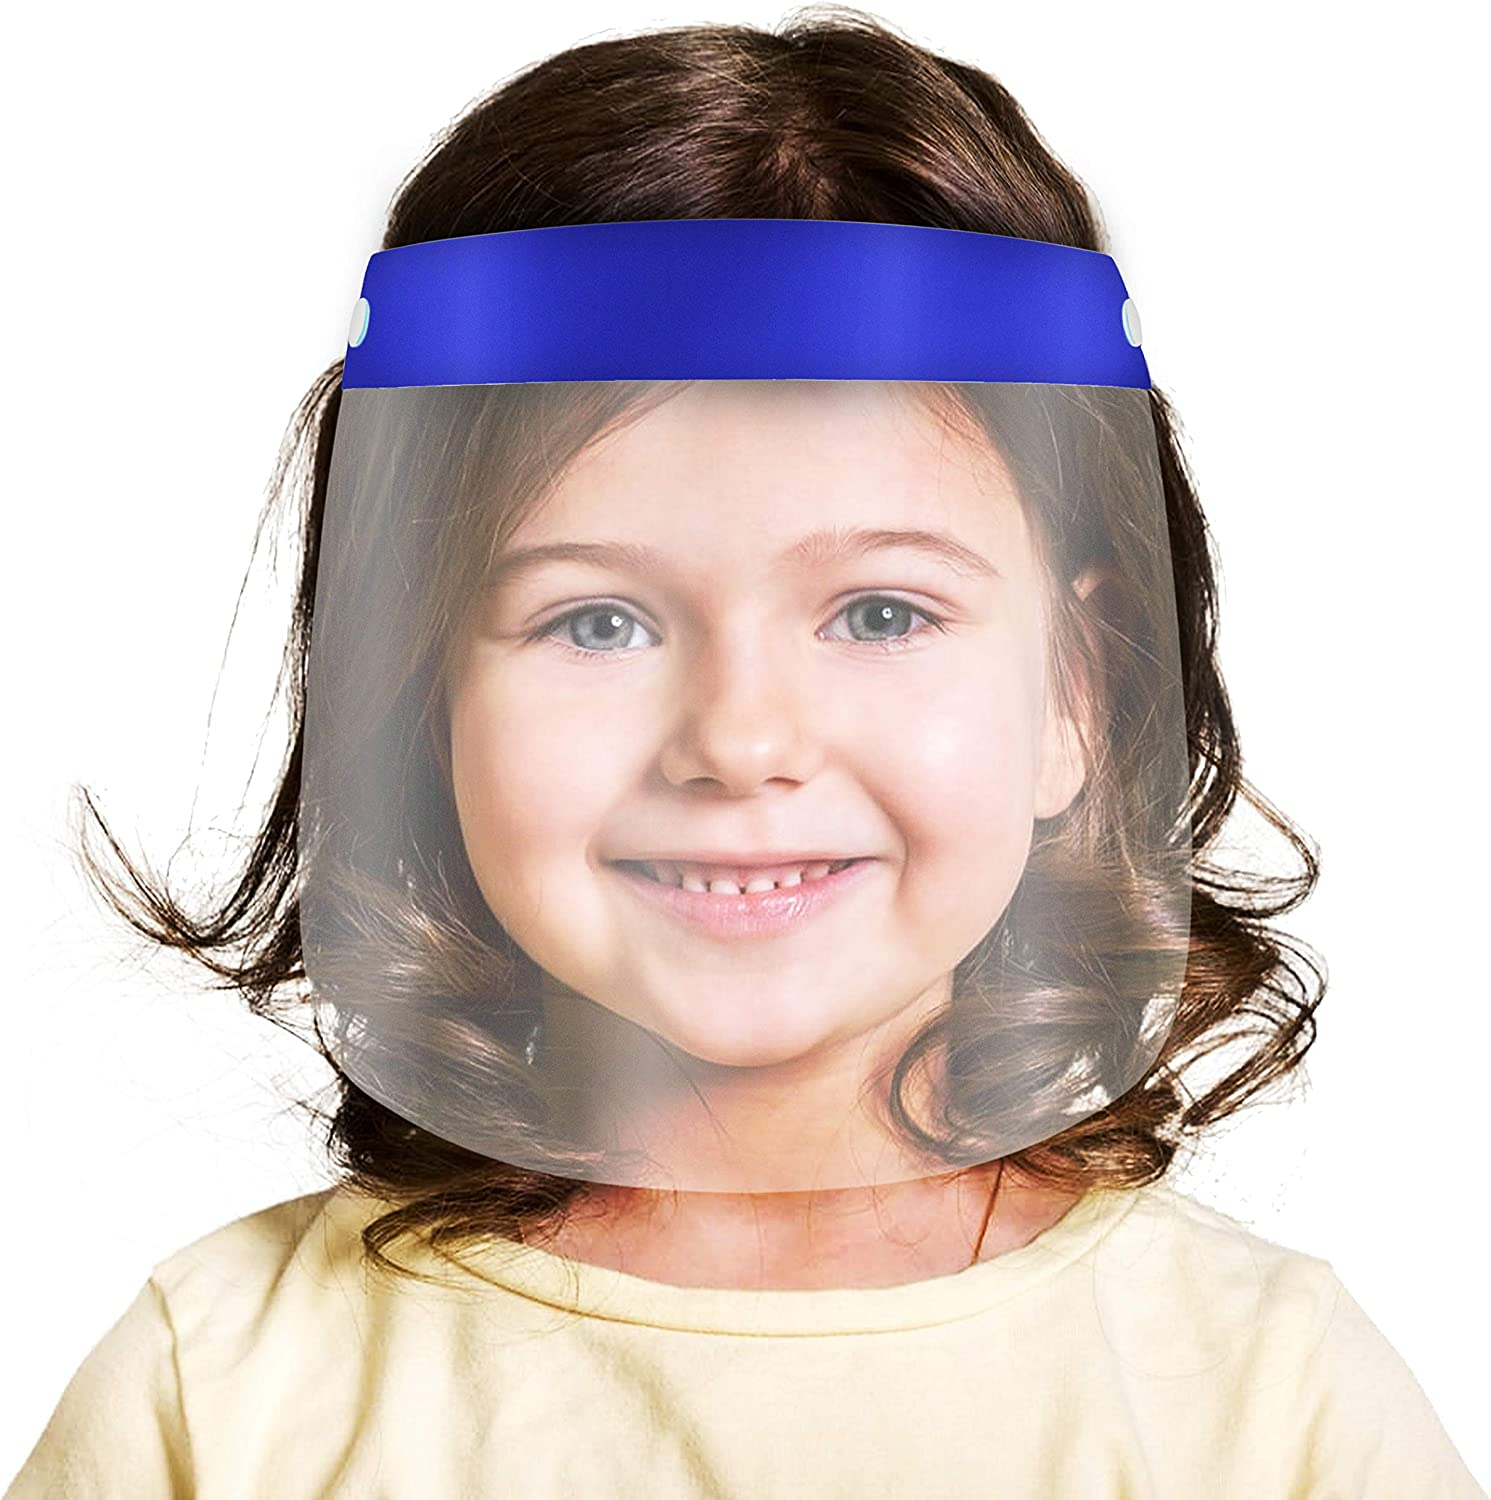 7Pcs Kids Face S̲h̲i̲e̲l̲d̲ Lightweight Transparent Safety Face Protective Full Face Covering with Elastic Band for Children